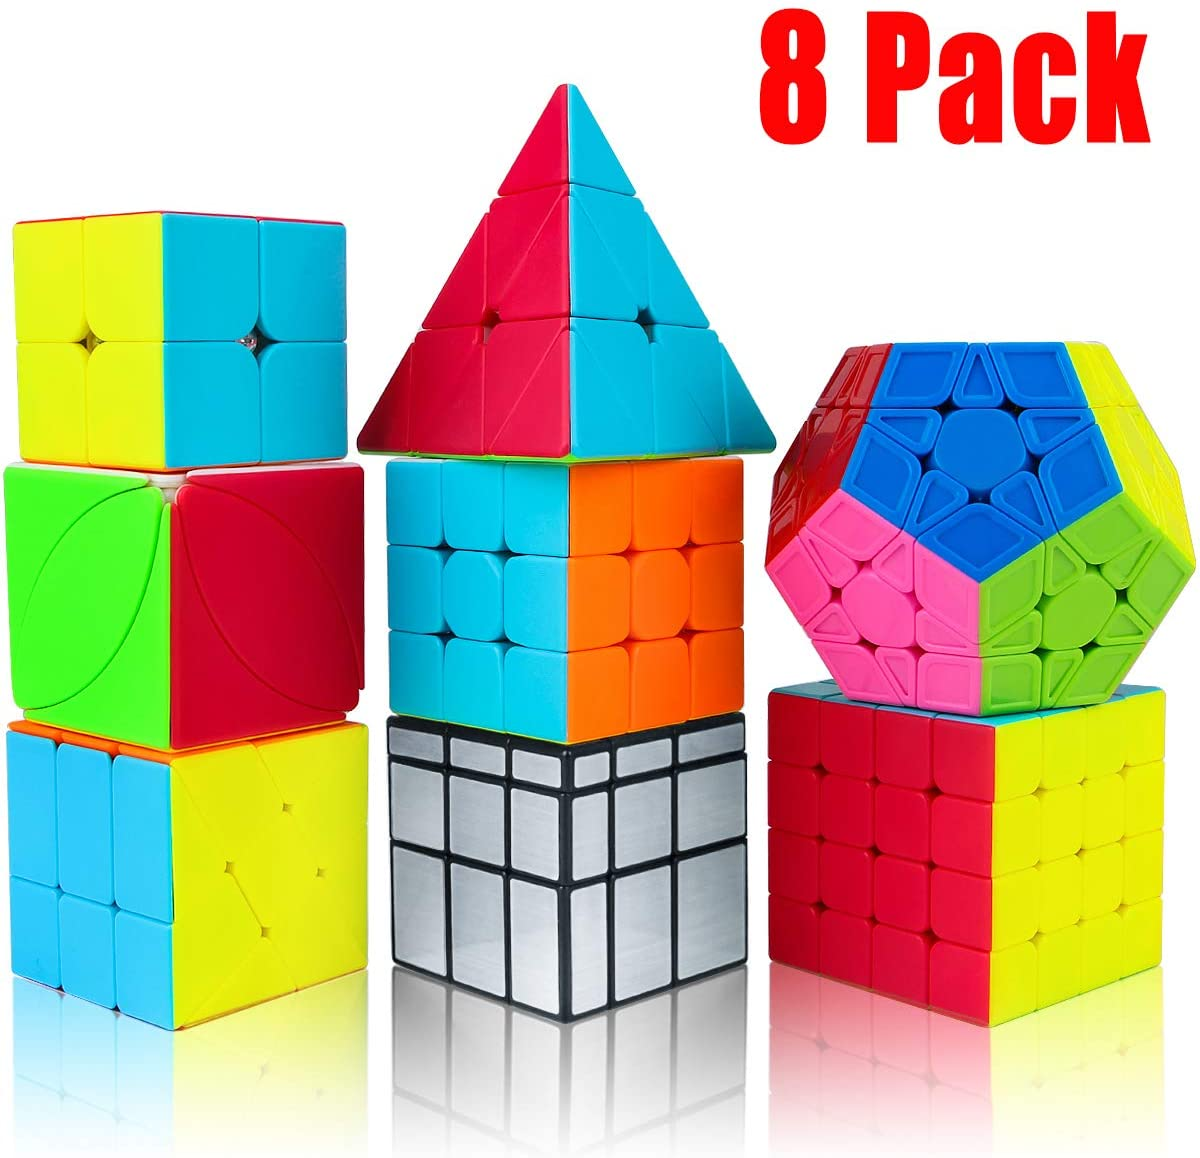 Magic Cube Stickerless Speed Cube Puzzle Toys Adult Educational Toys for Children Gift High Difficulty 3D Puzzle This is A Difficult Challenge